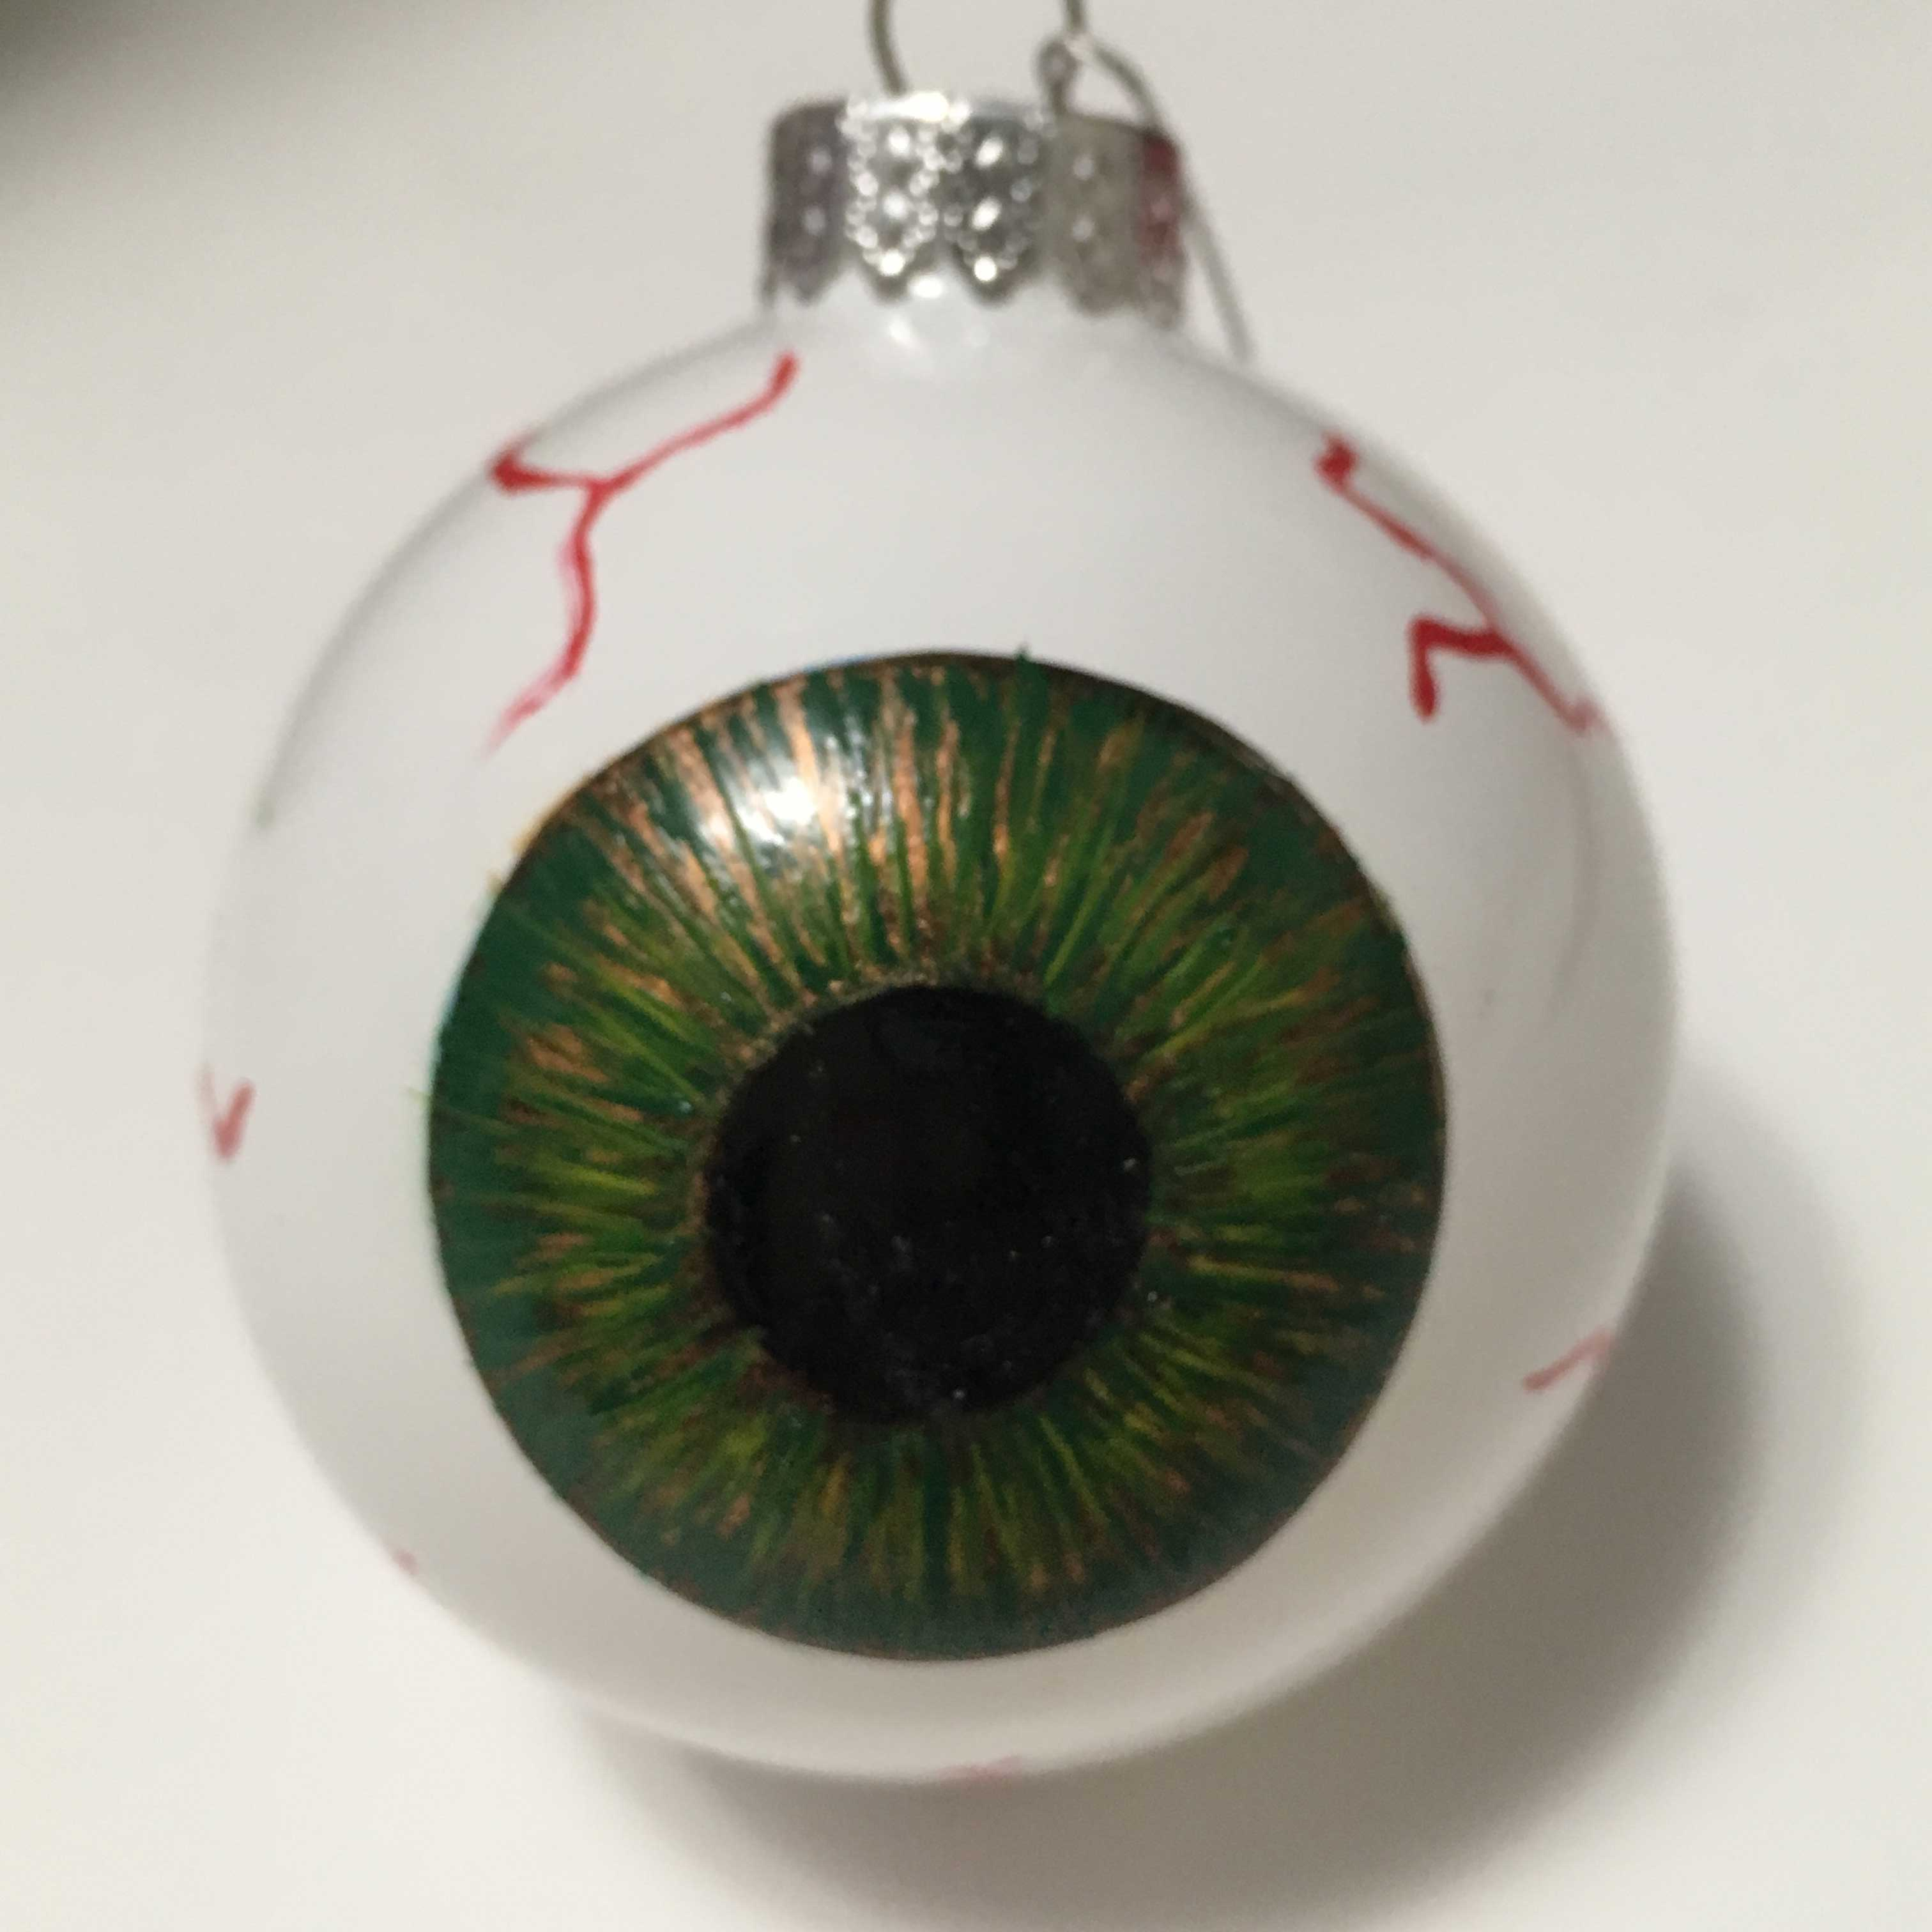 Green Eyeball ornament